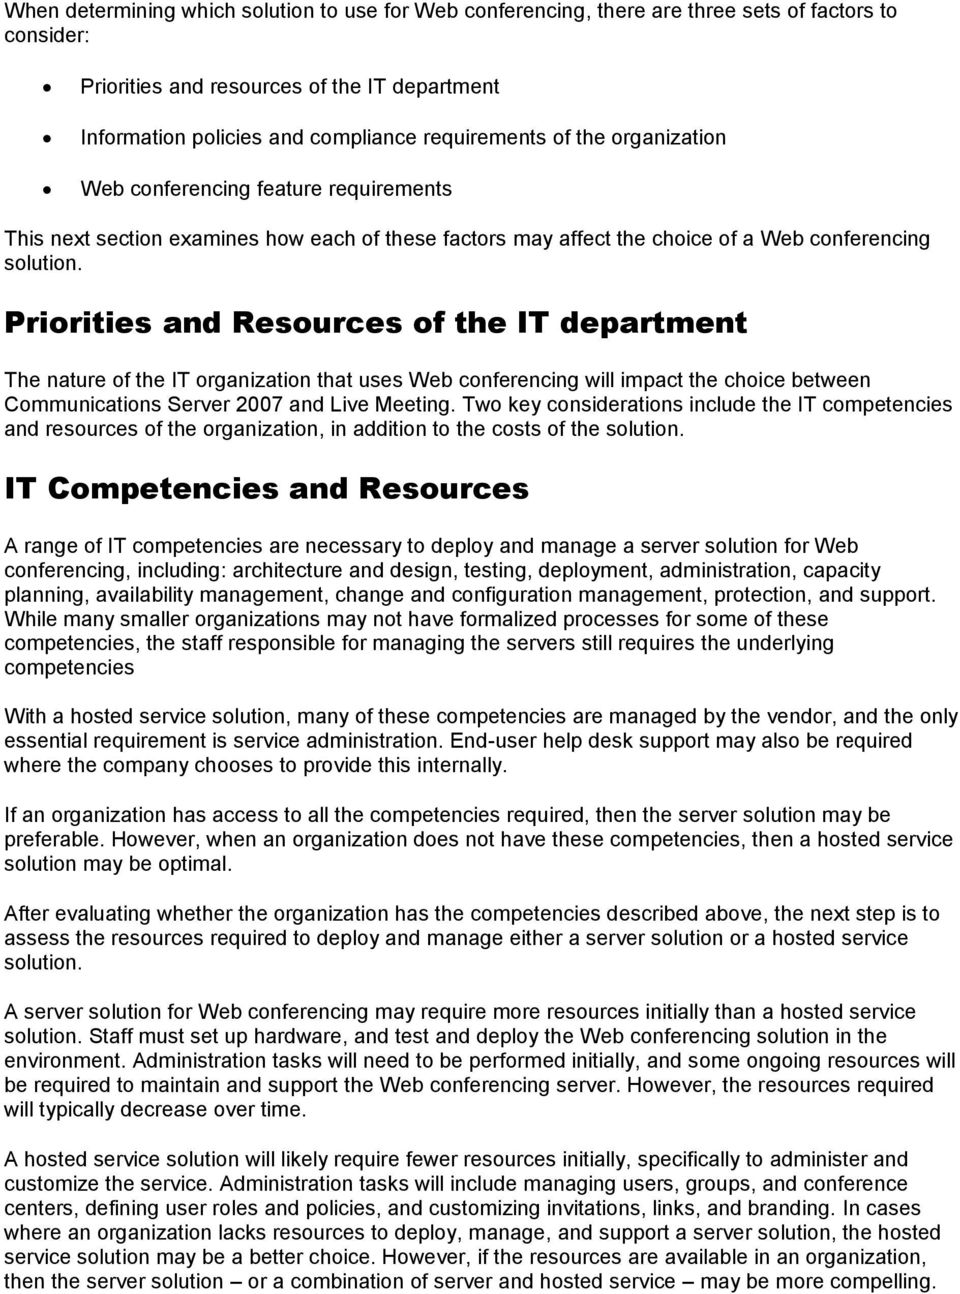 Priorities and Resources of the IT department The nature of the IT organization that uses Web conferencing will impact the choice between Communications Server 2007 and Live Meeting.